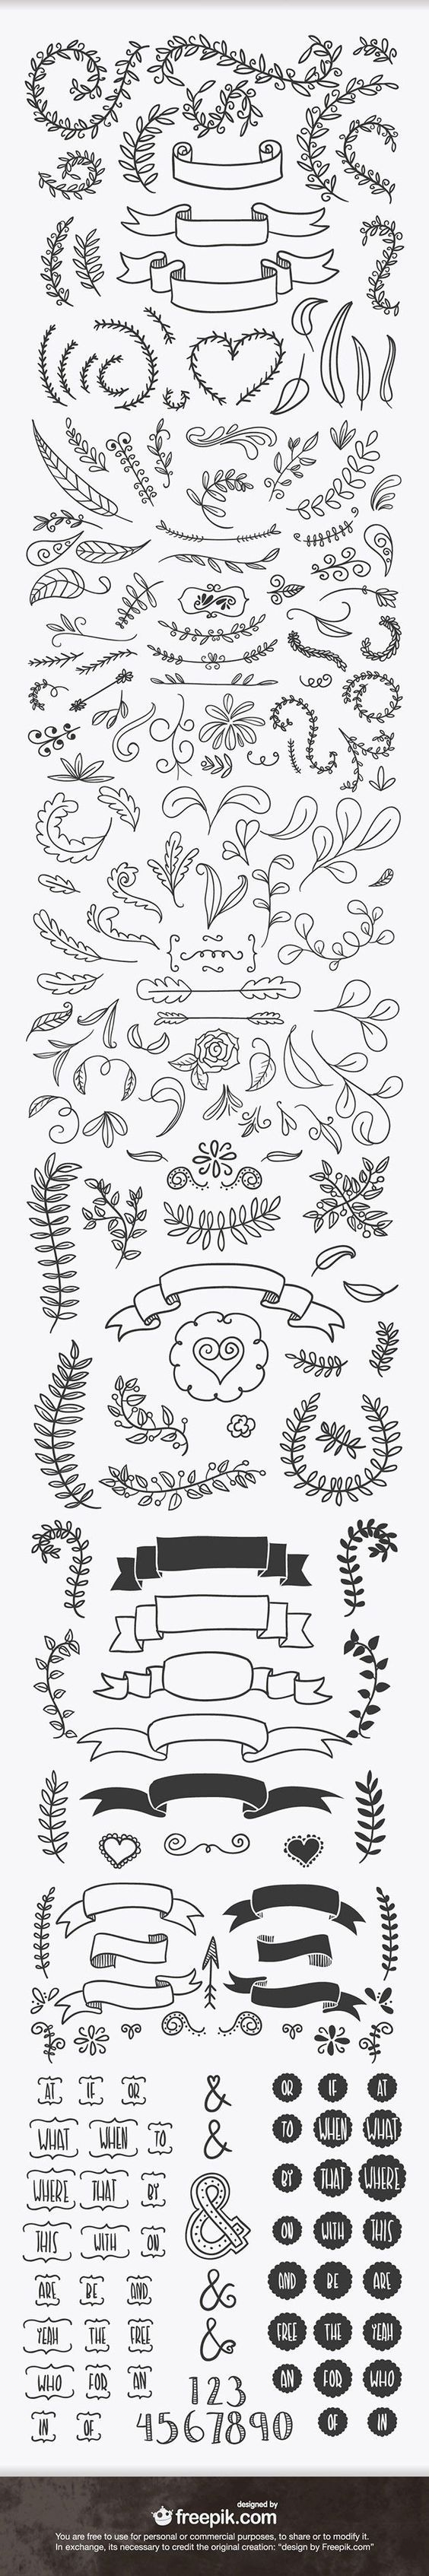 Beautiful hand lettering inspiration. These designs would be perfect wood burning patterns!